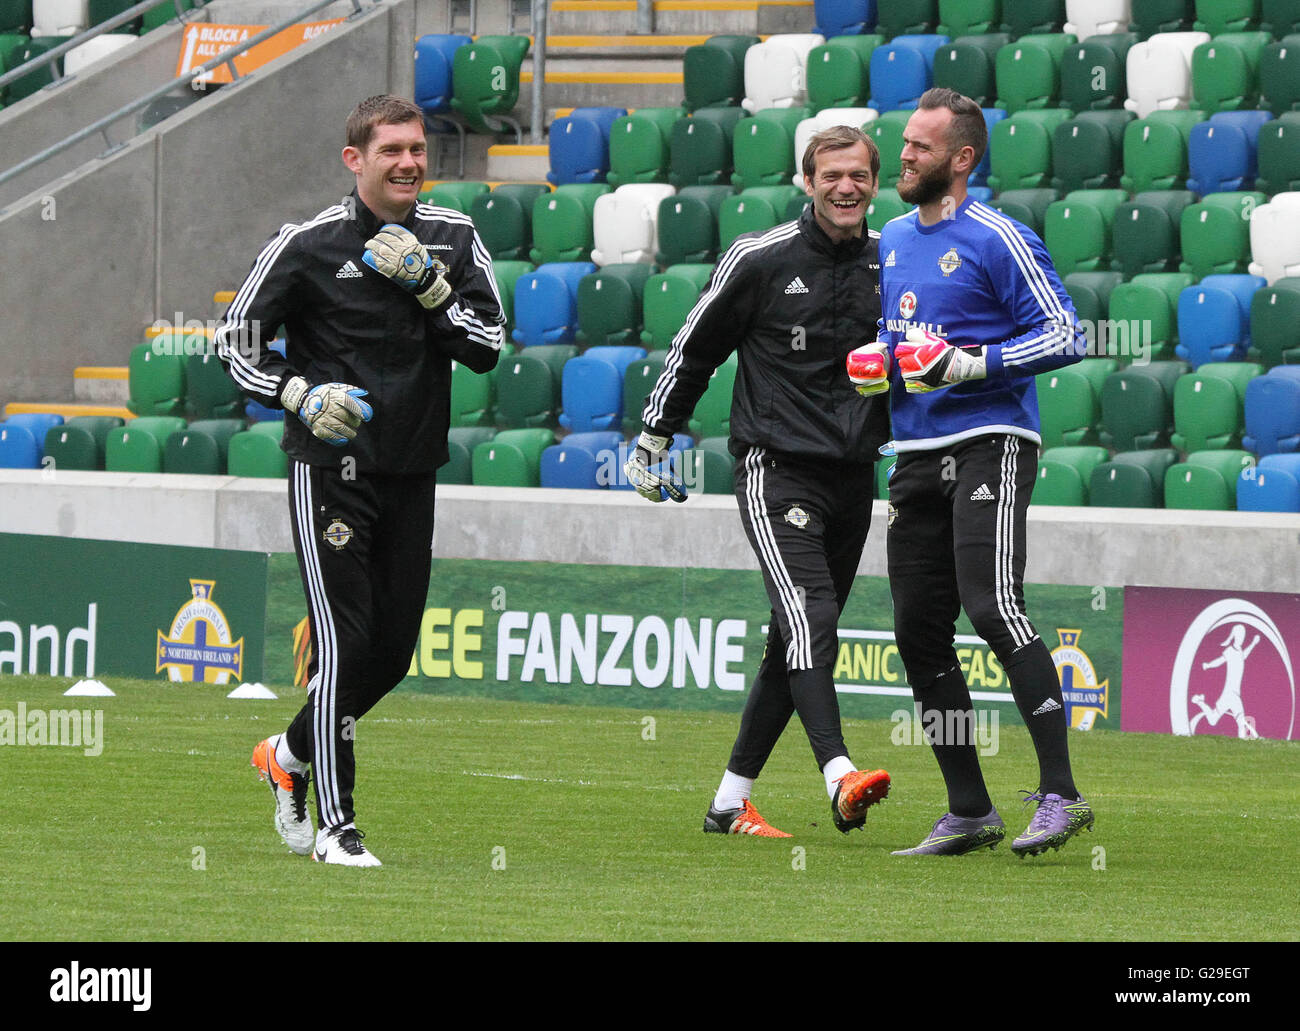 National Football Stadium, Belfast, United Kingdom. 25th May 2016. Northern Ireland goalkeepers (l-r) Michael McGovern, - Stock Image